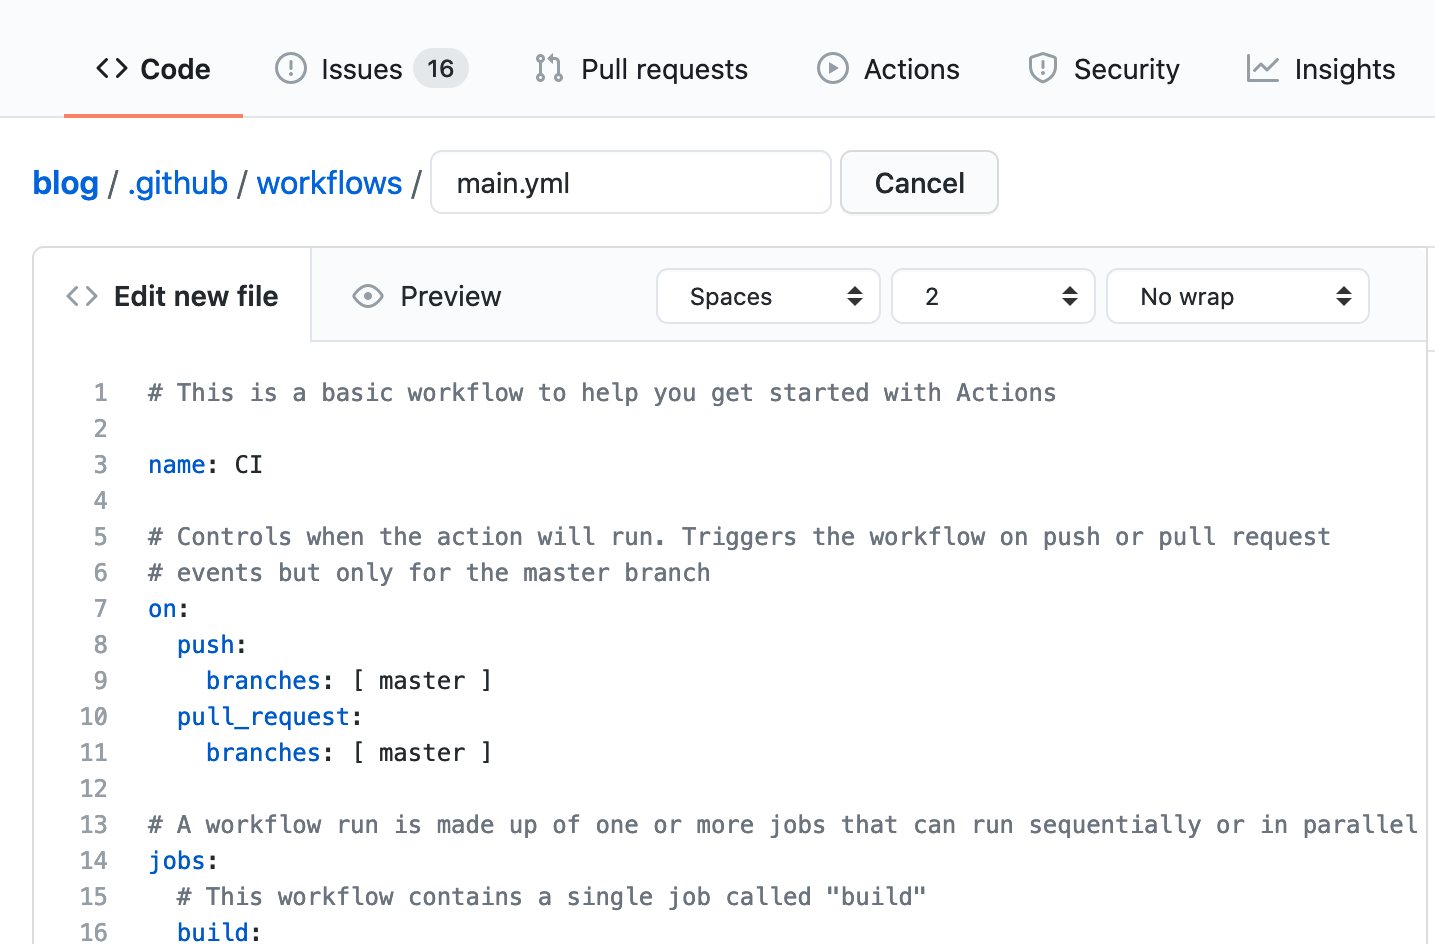 Workflow editor page